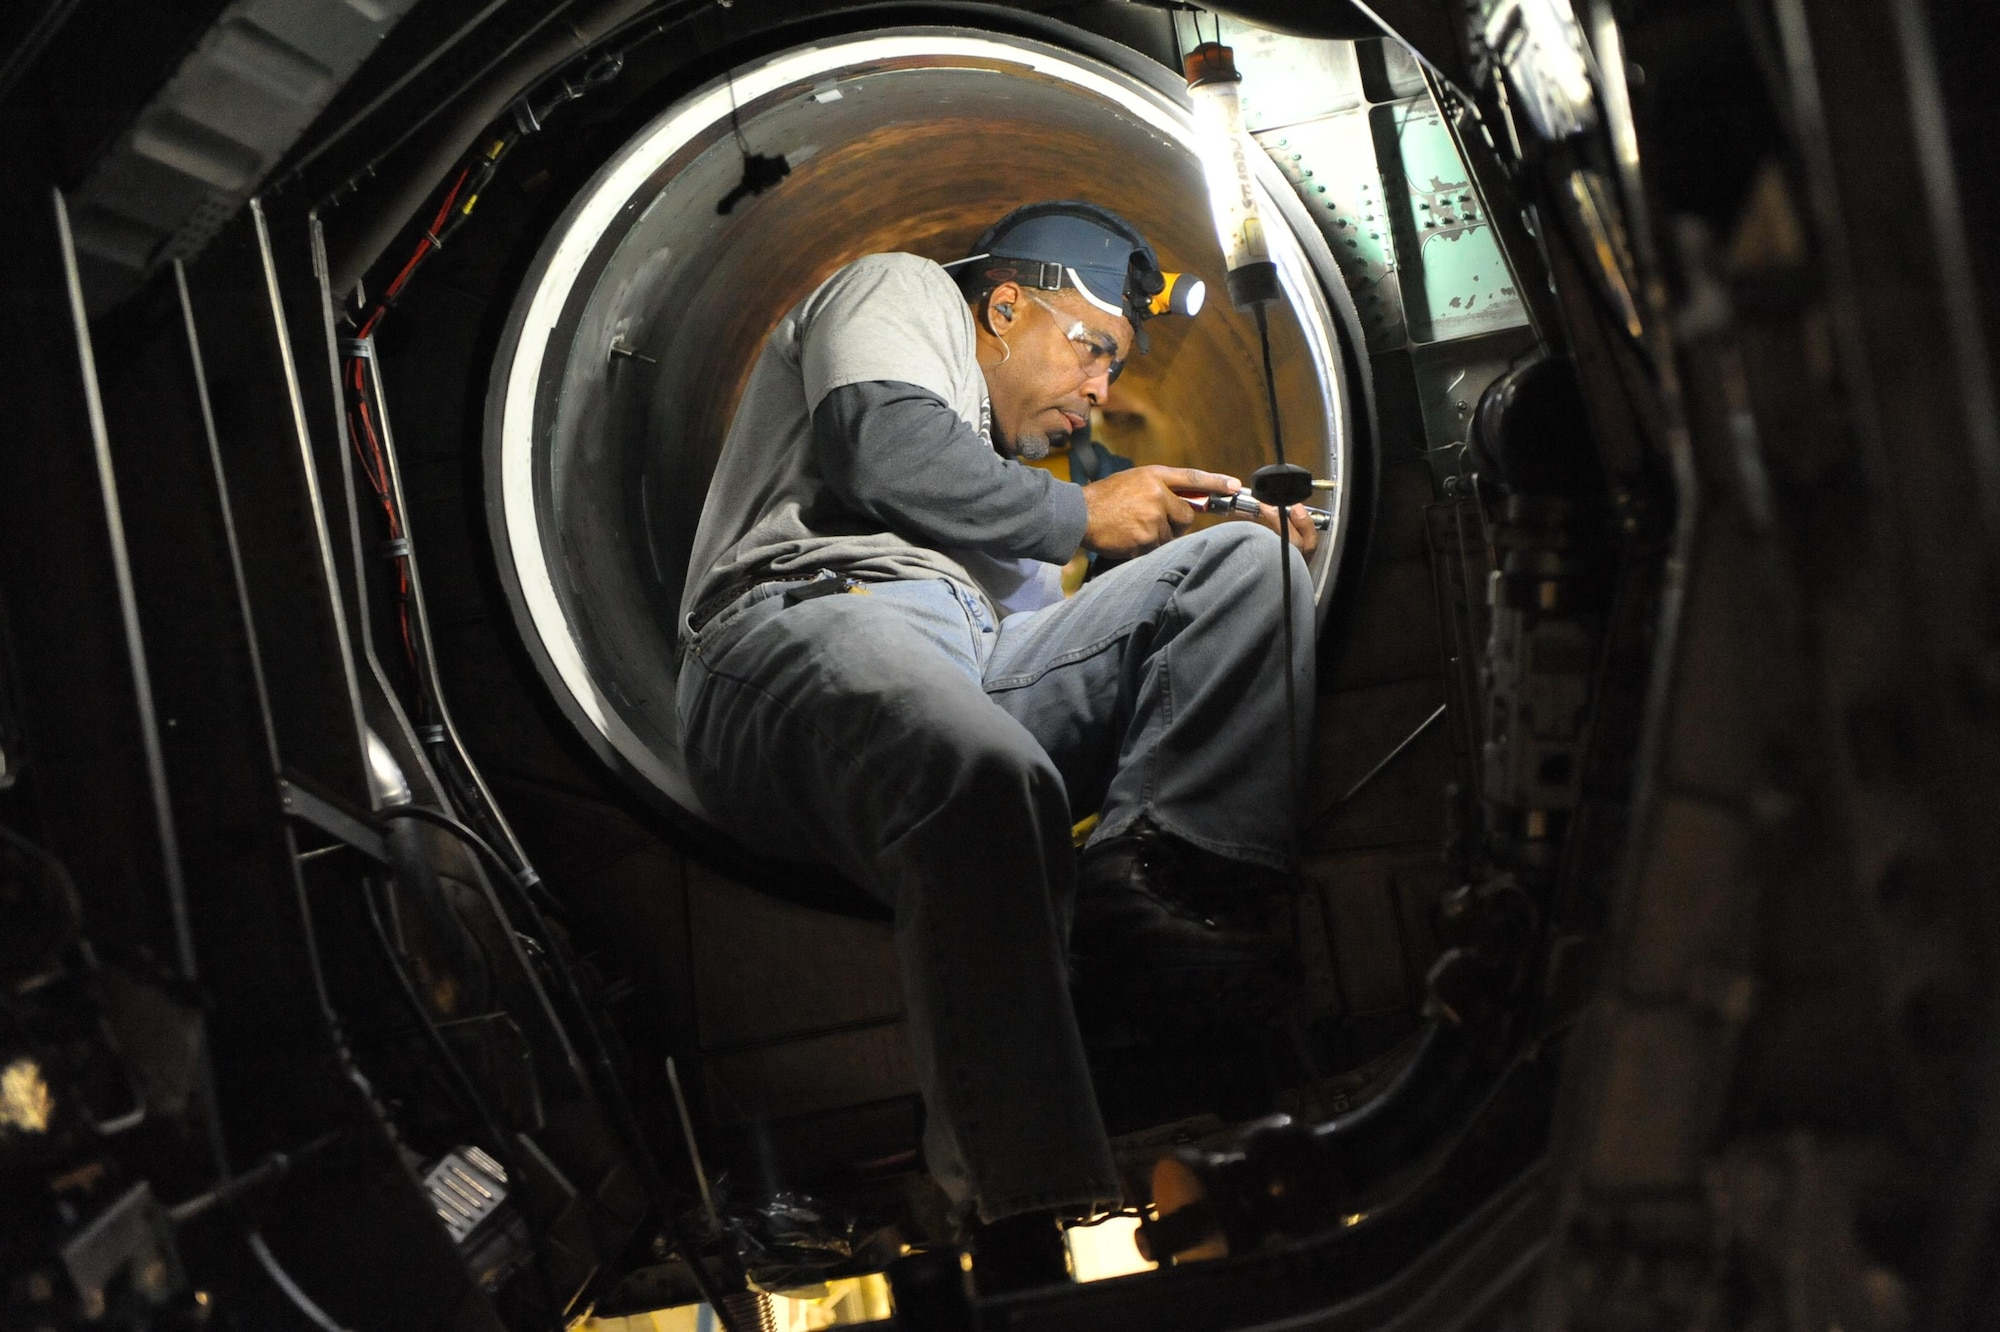 Anthony Farrow, of the 561st Aircraft Maintenance Squadron Production Support, changes intake fasteners on an F-15 Eagle during programmed depot maintenance at Robins Air Force Base, Ga. Thanks, in part, to the diligence of the base's employees, F-15 pilots are able to provide aerial security above Levi's Stadium in Santa Clara, Calif., during Super Bowl 50 on Feb. 7, 2016. (U.S. Air Force photo/Ray Crayton)